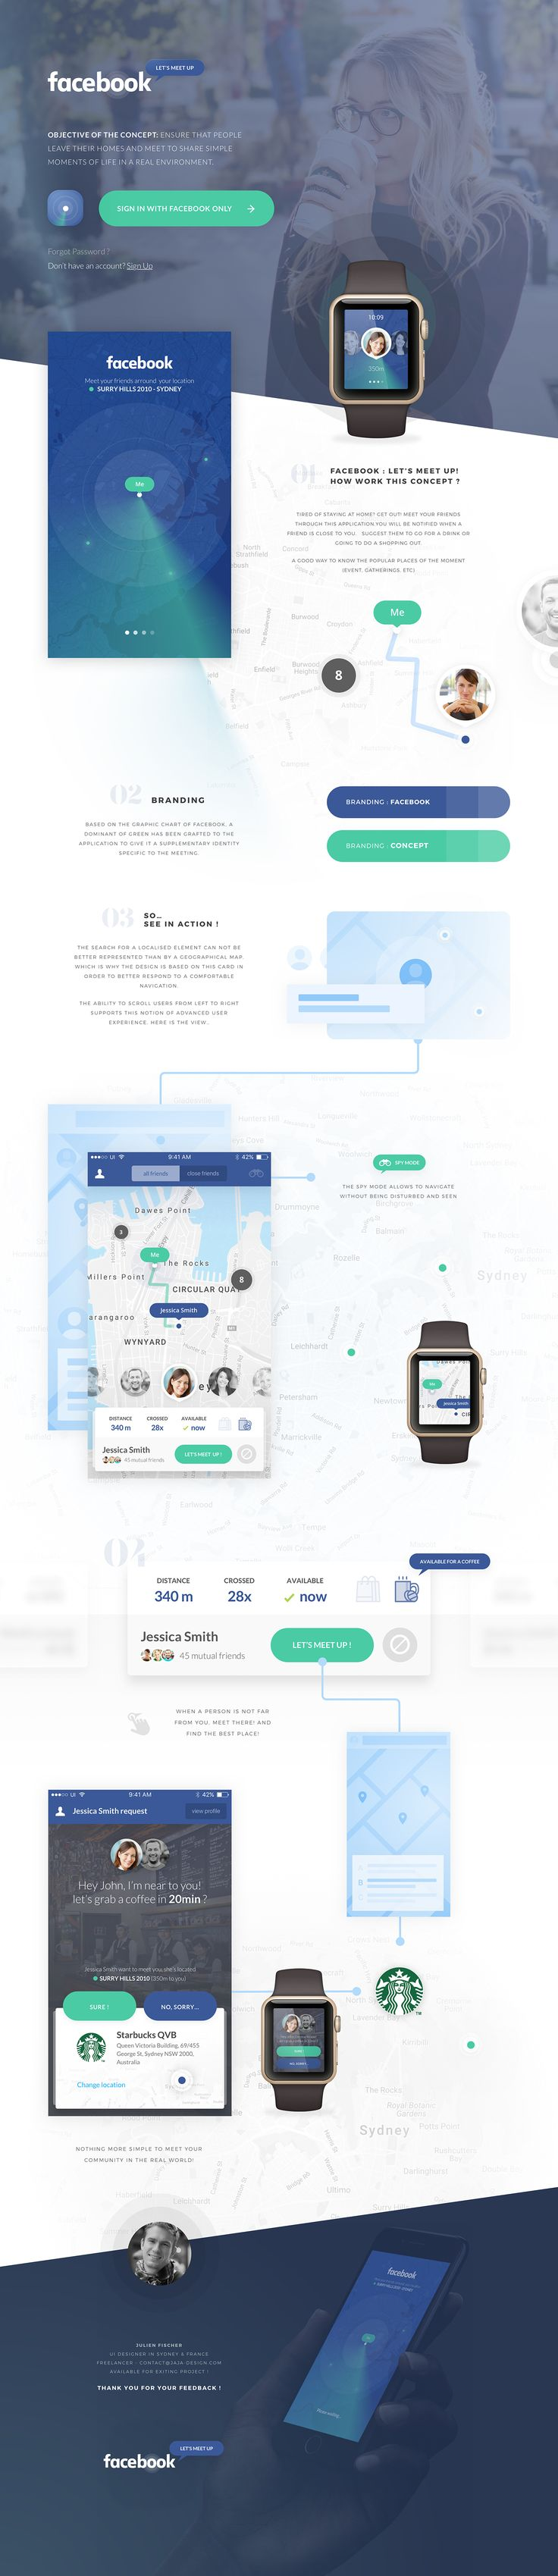 """Proud to introduce my new concept: """"Facebook, let's meet up!"""", which will take you out of your home!Objective of the concept:Ensure that people leave their homes and meet to share simple moments of life in a real environment.Facebook : let's meet up!…"""